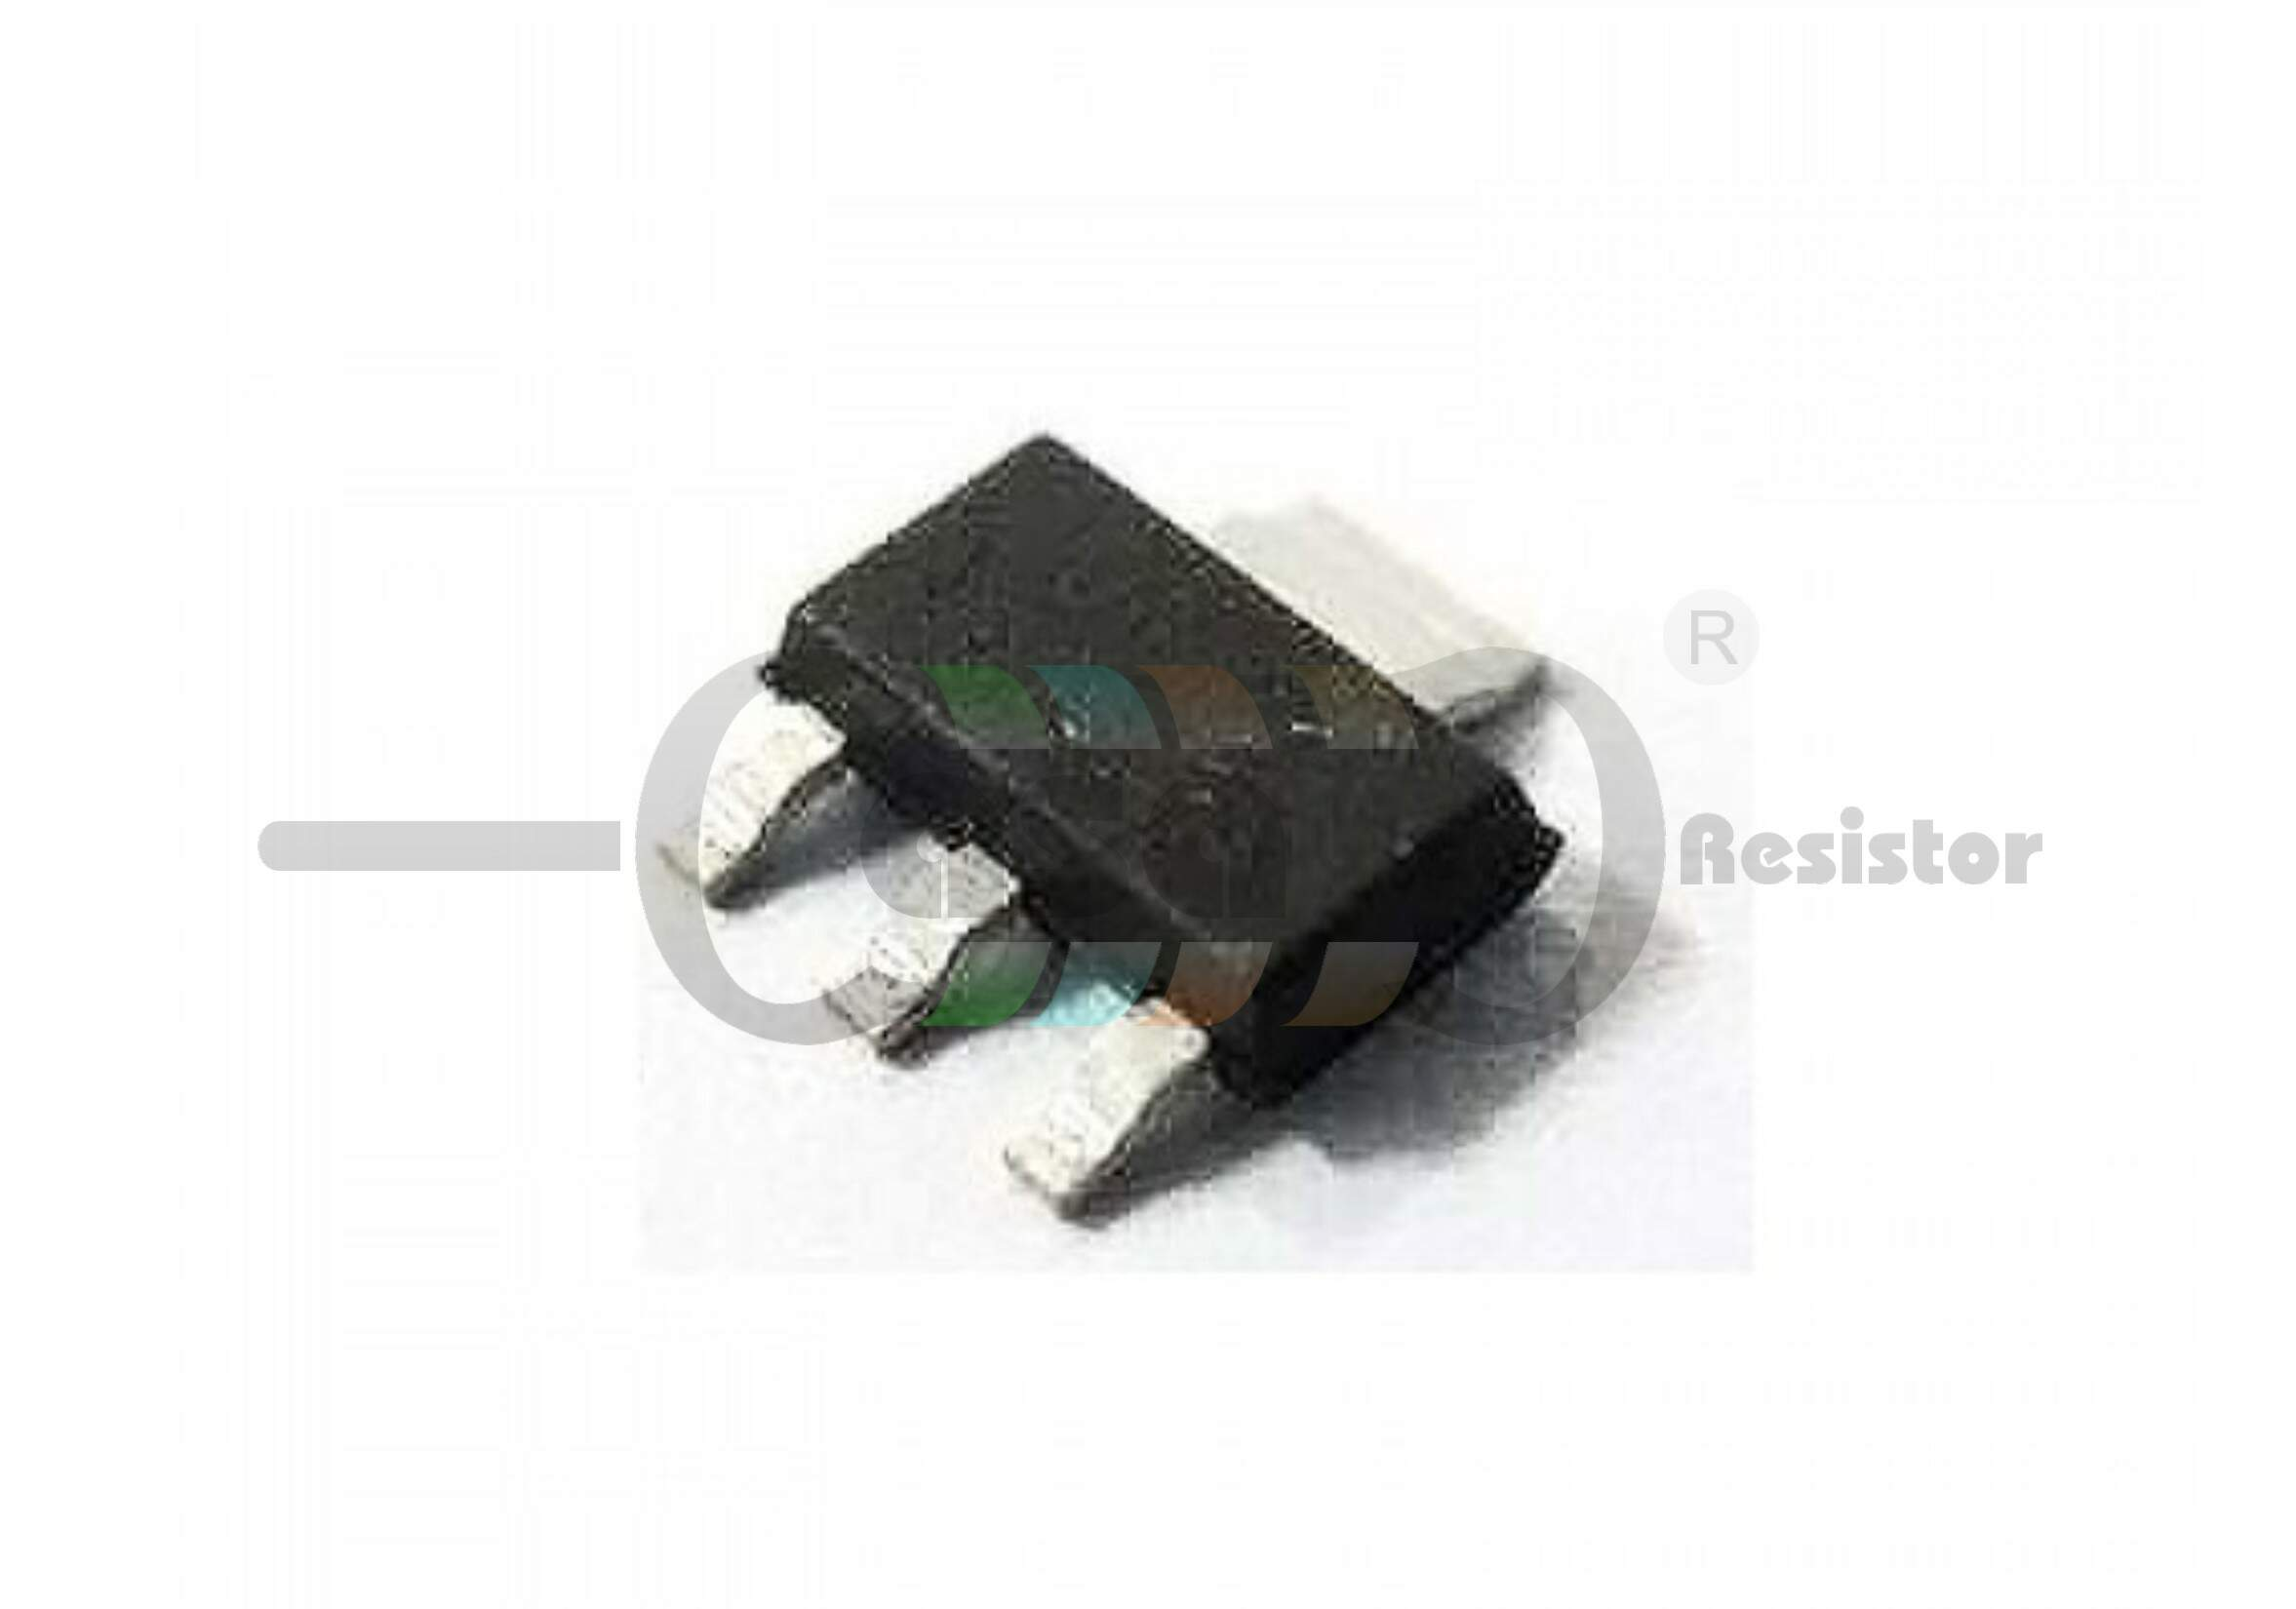 CI SMD 78L09 SOT-89 (ZCUS0015)